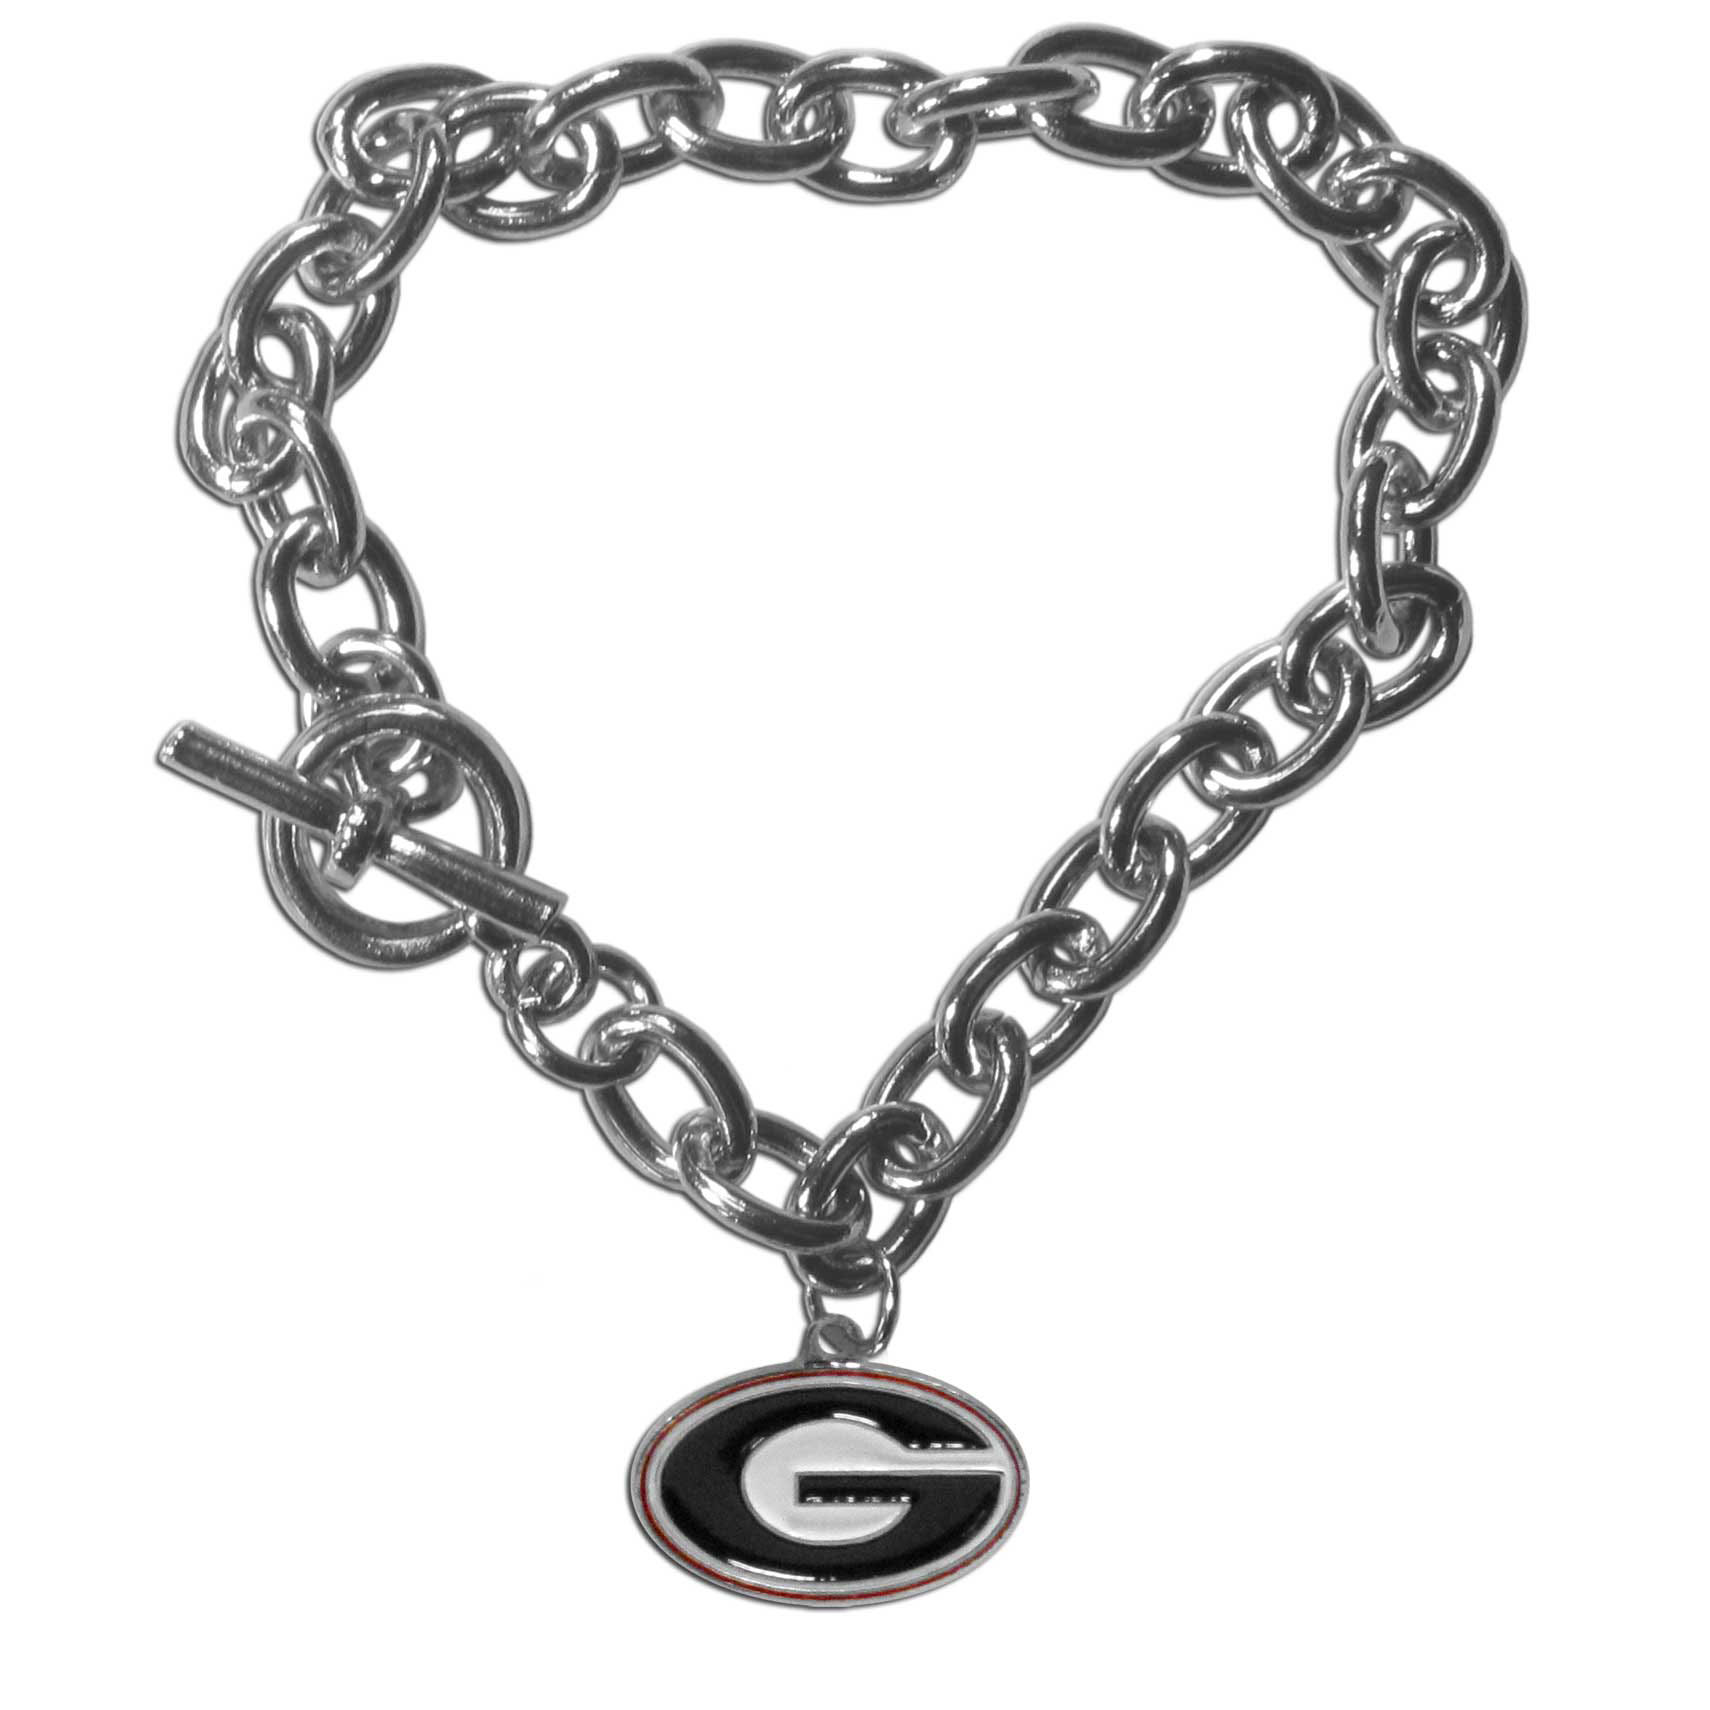 Georgia Bulldogs Charm Chain Bracelet - Our classic single charm bracelet is a great way to show off your team pride! The 7.5 inch large link chain features a high polish Georgia Bulldogs charm and features a toggle clasp which makes it super easy to take on and off.